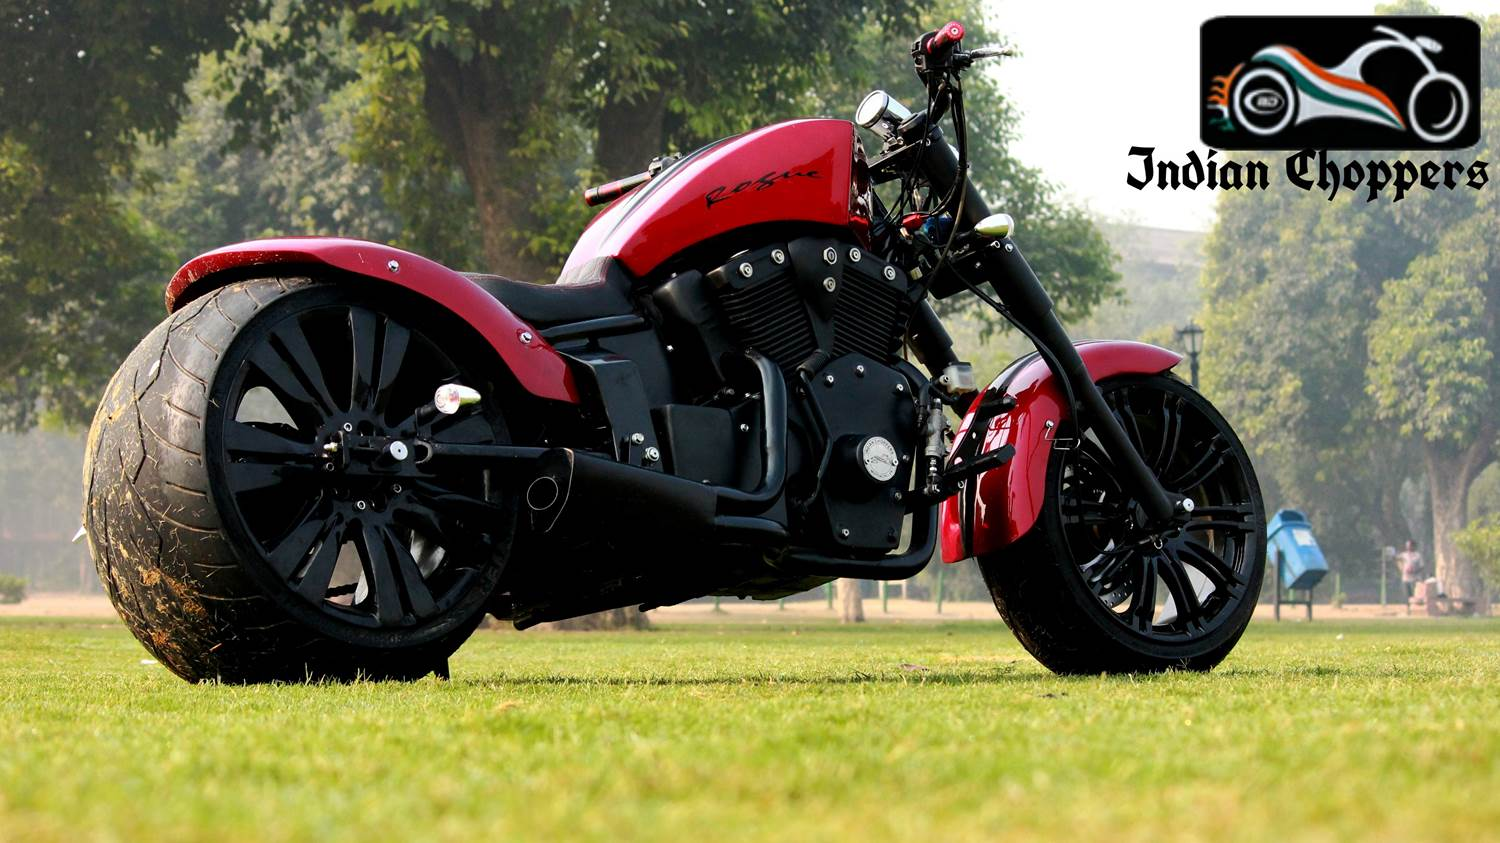 Motorcycle Dealer Near Me >> Rouge with dummy V-Twin – from Indian Chopper